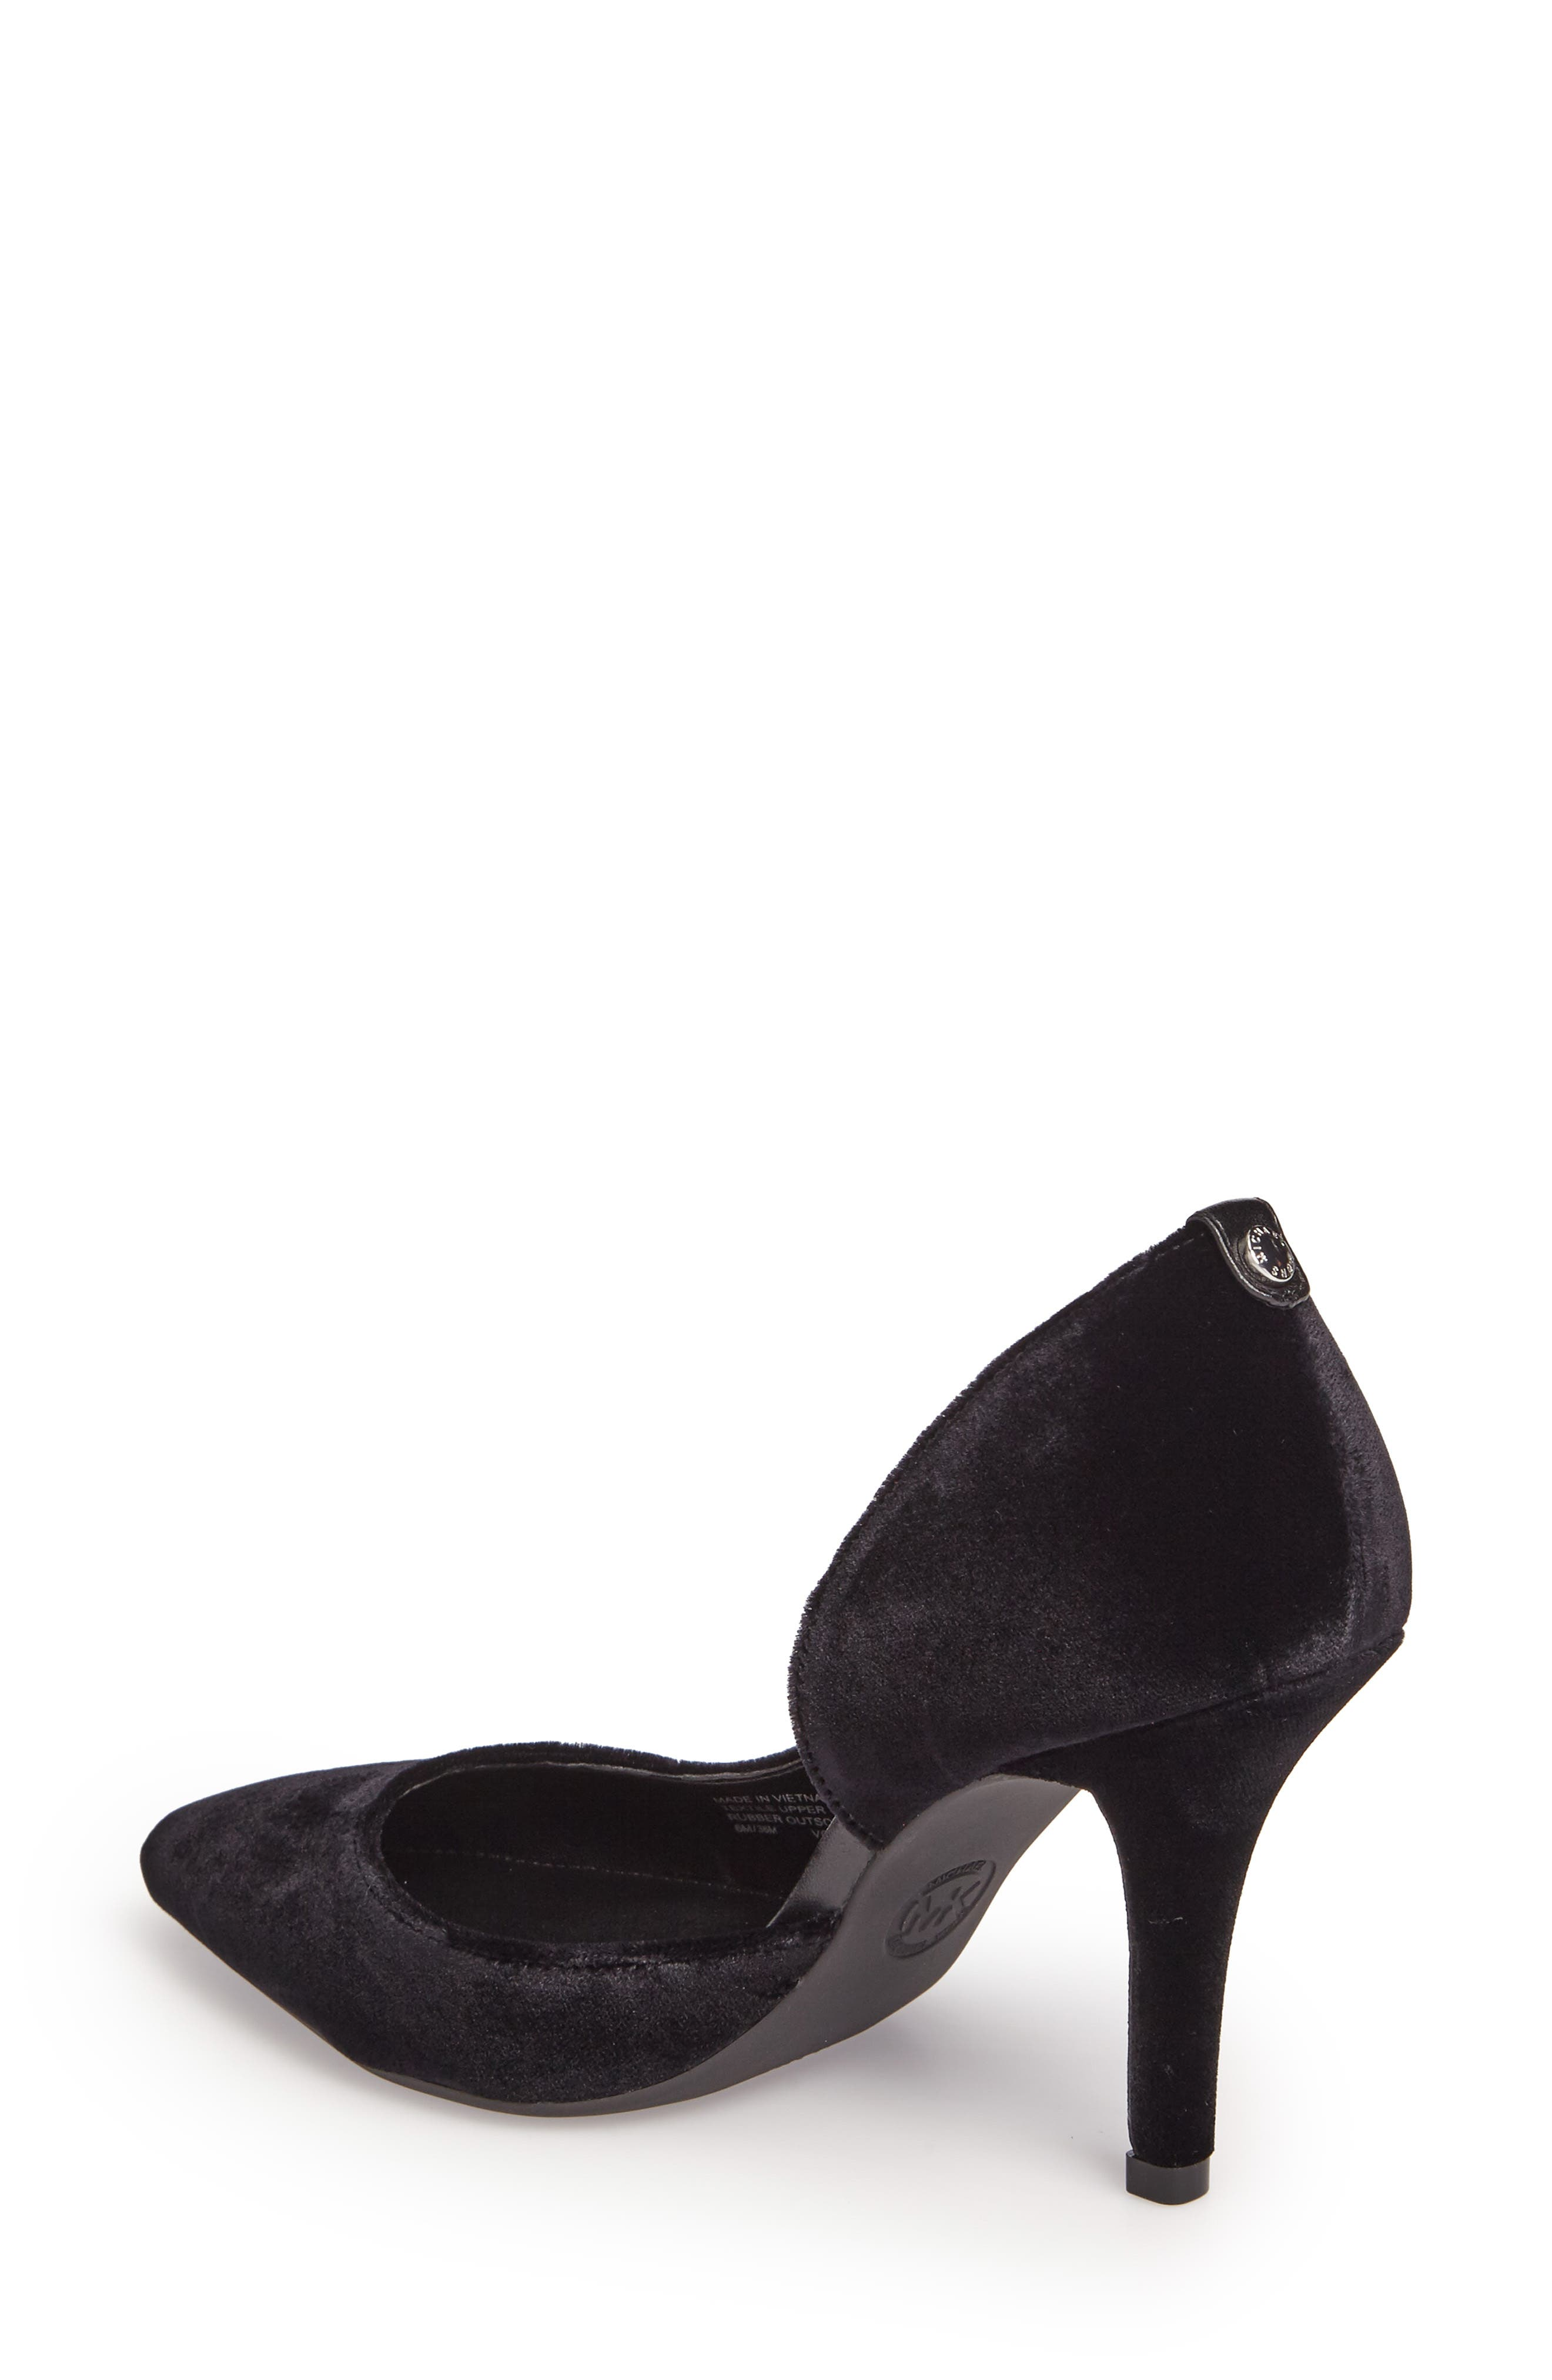 'Nathalie Flex' Half D'Orsay Pump,                             Alternate thumbnail 2, color,                             002